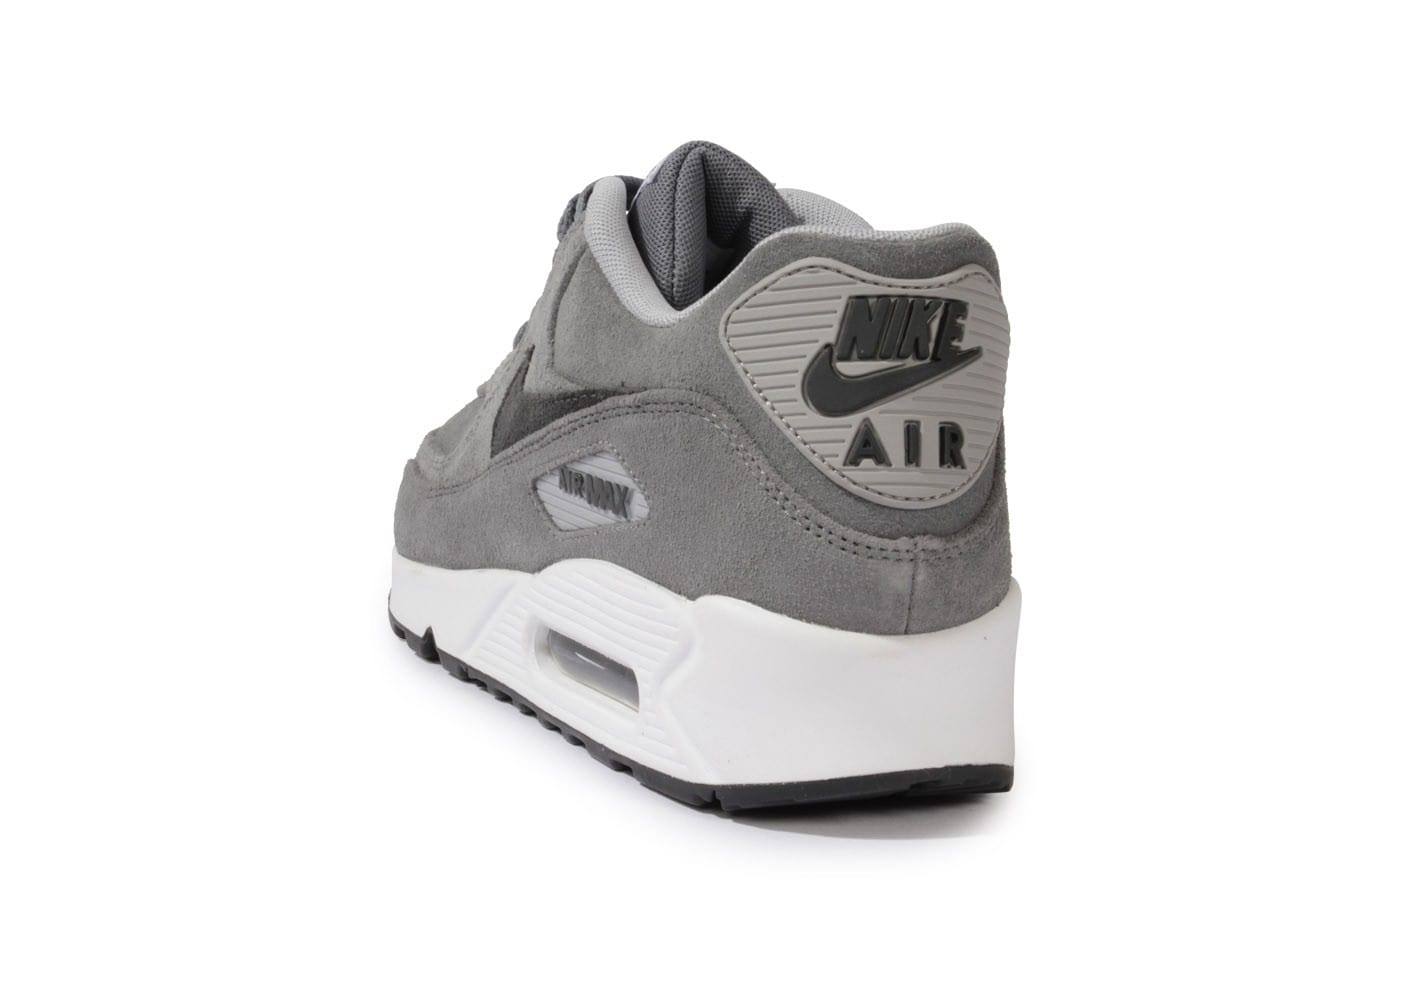 low priced e82eb cfe0c ... Chaussures Nike Air Max 90 Leather Premium Grise vue arrière ...